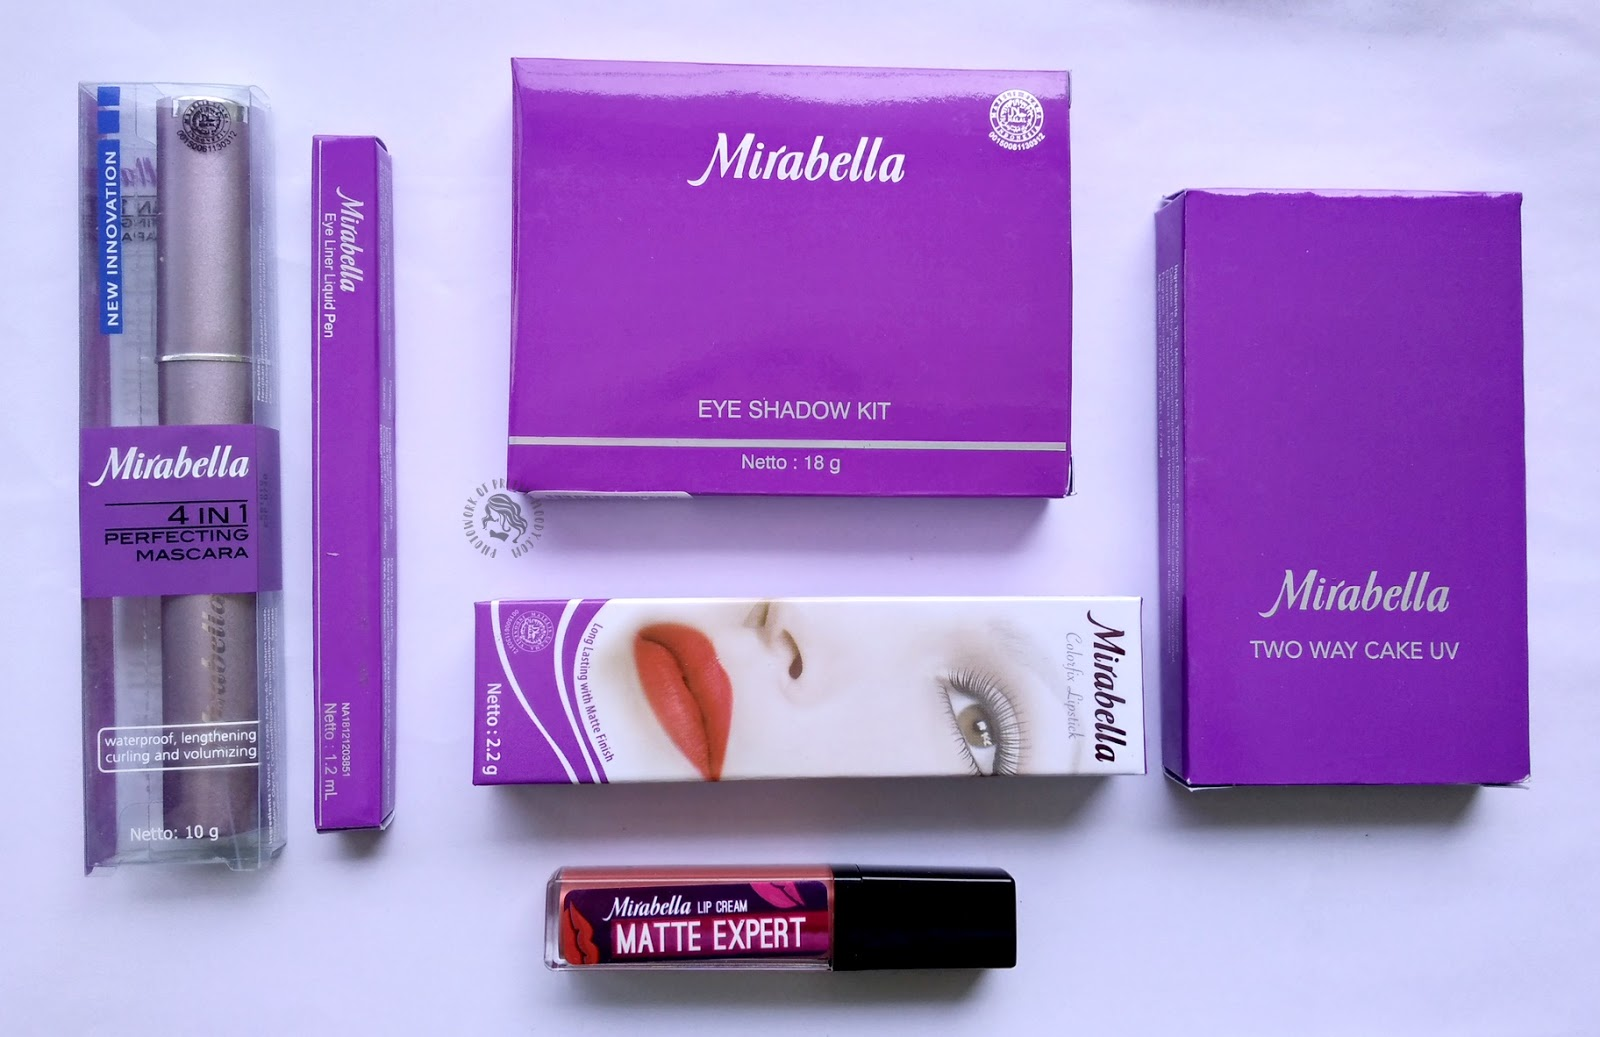 Whats In The Box Unboxing Dan First Impression Mirabella Cosmetics Lip Cream Matte Expert 01